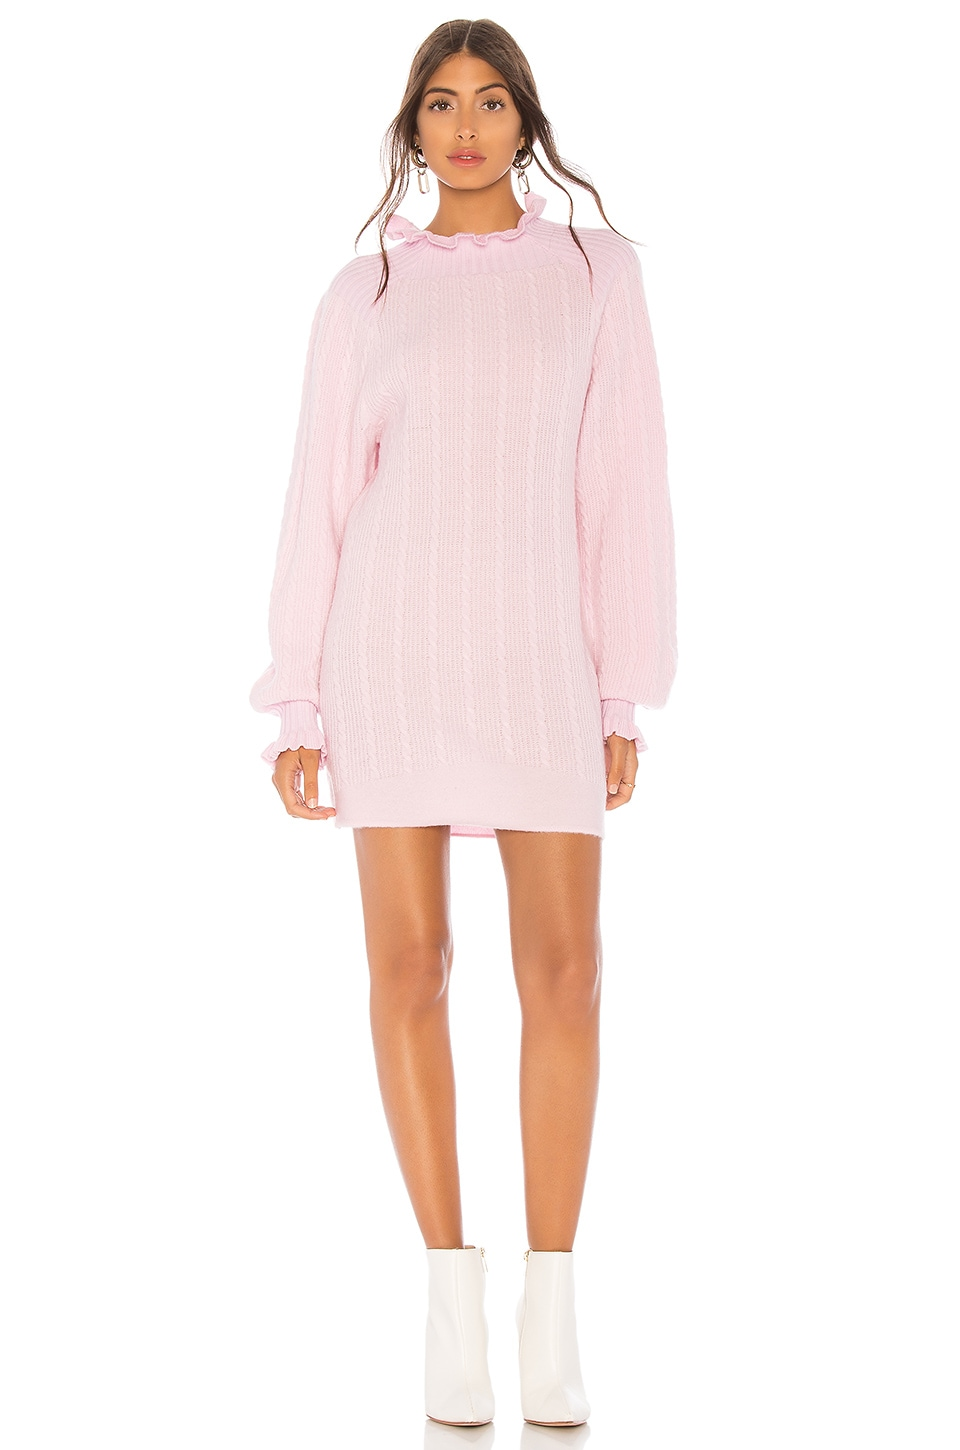 Tularosa Lottie Sweater Dress in Blush Pink